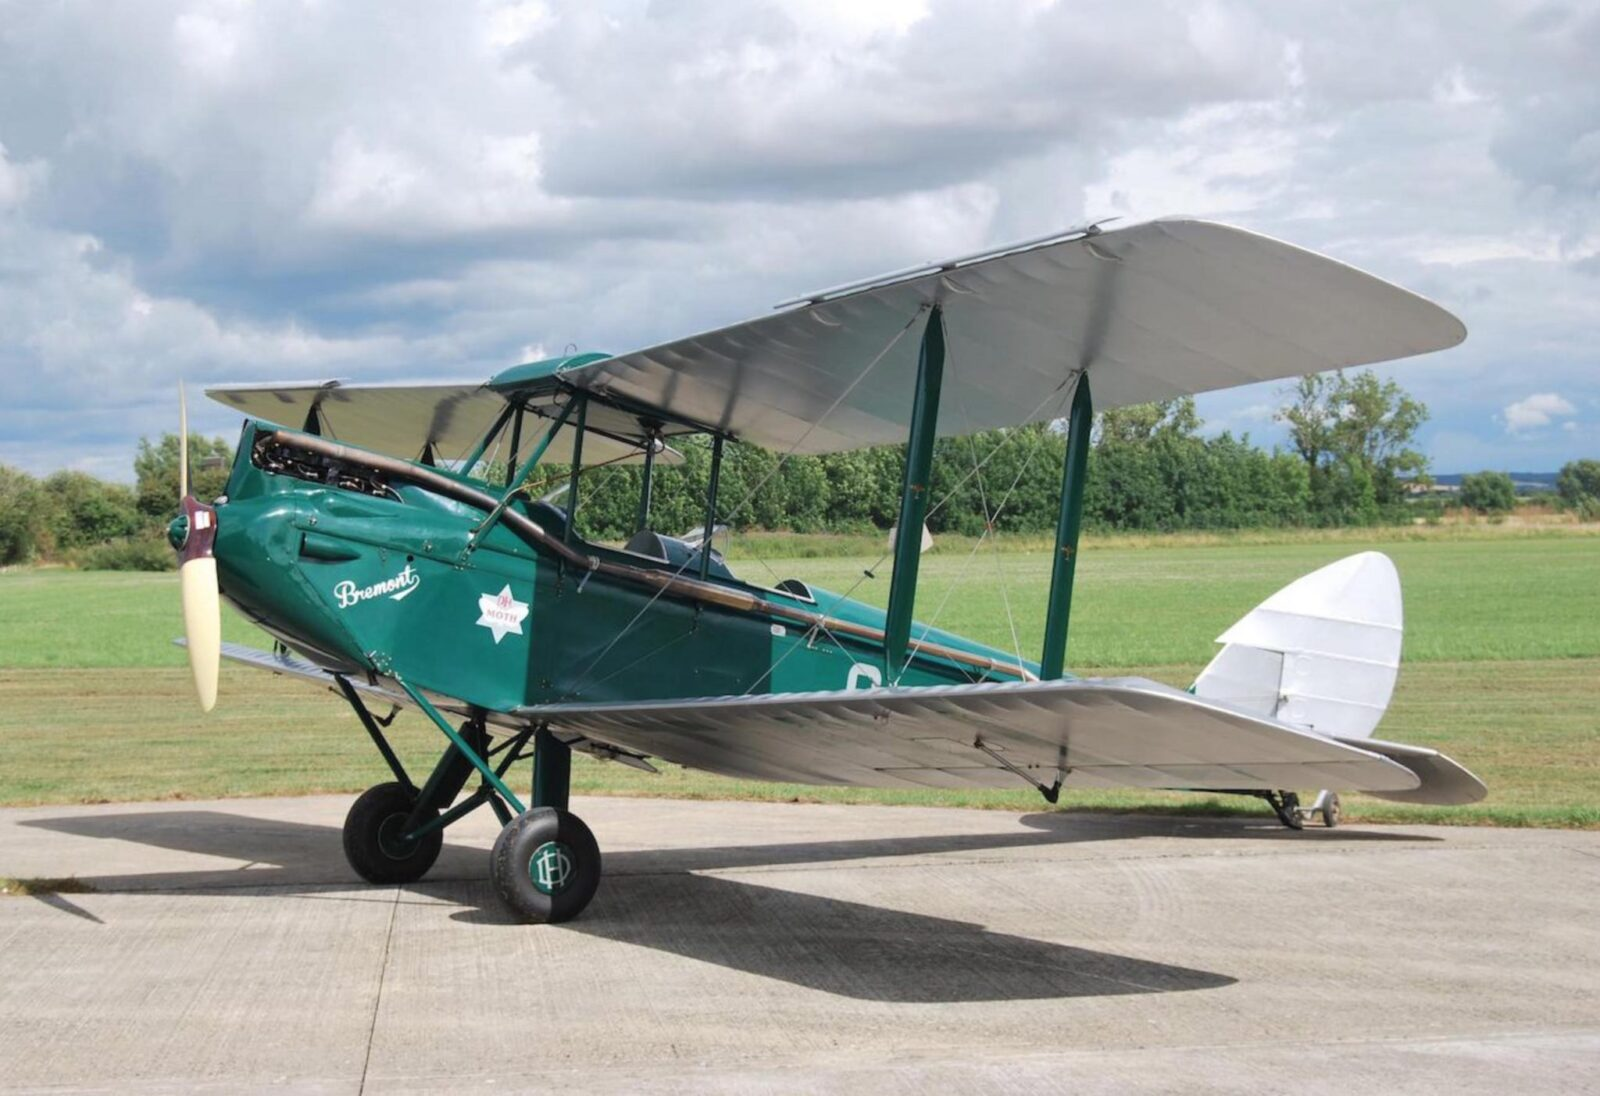 De Havilland Gipsy Moth 1600x1096 - 1933 De Havilland Gipsy Moth